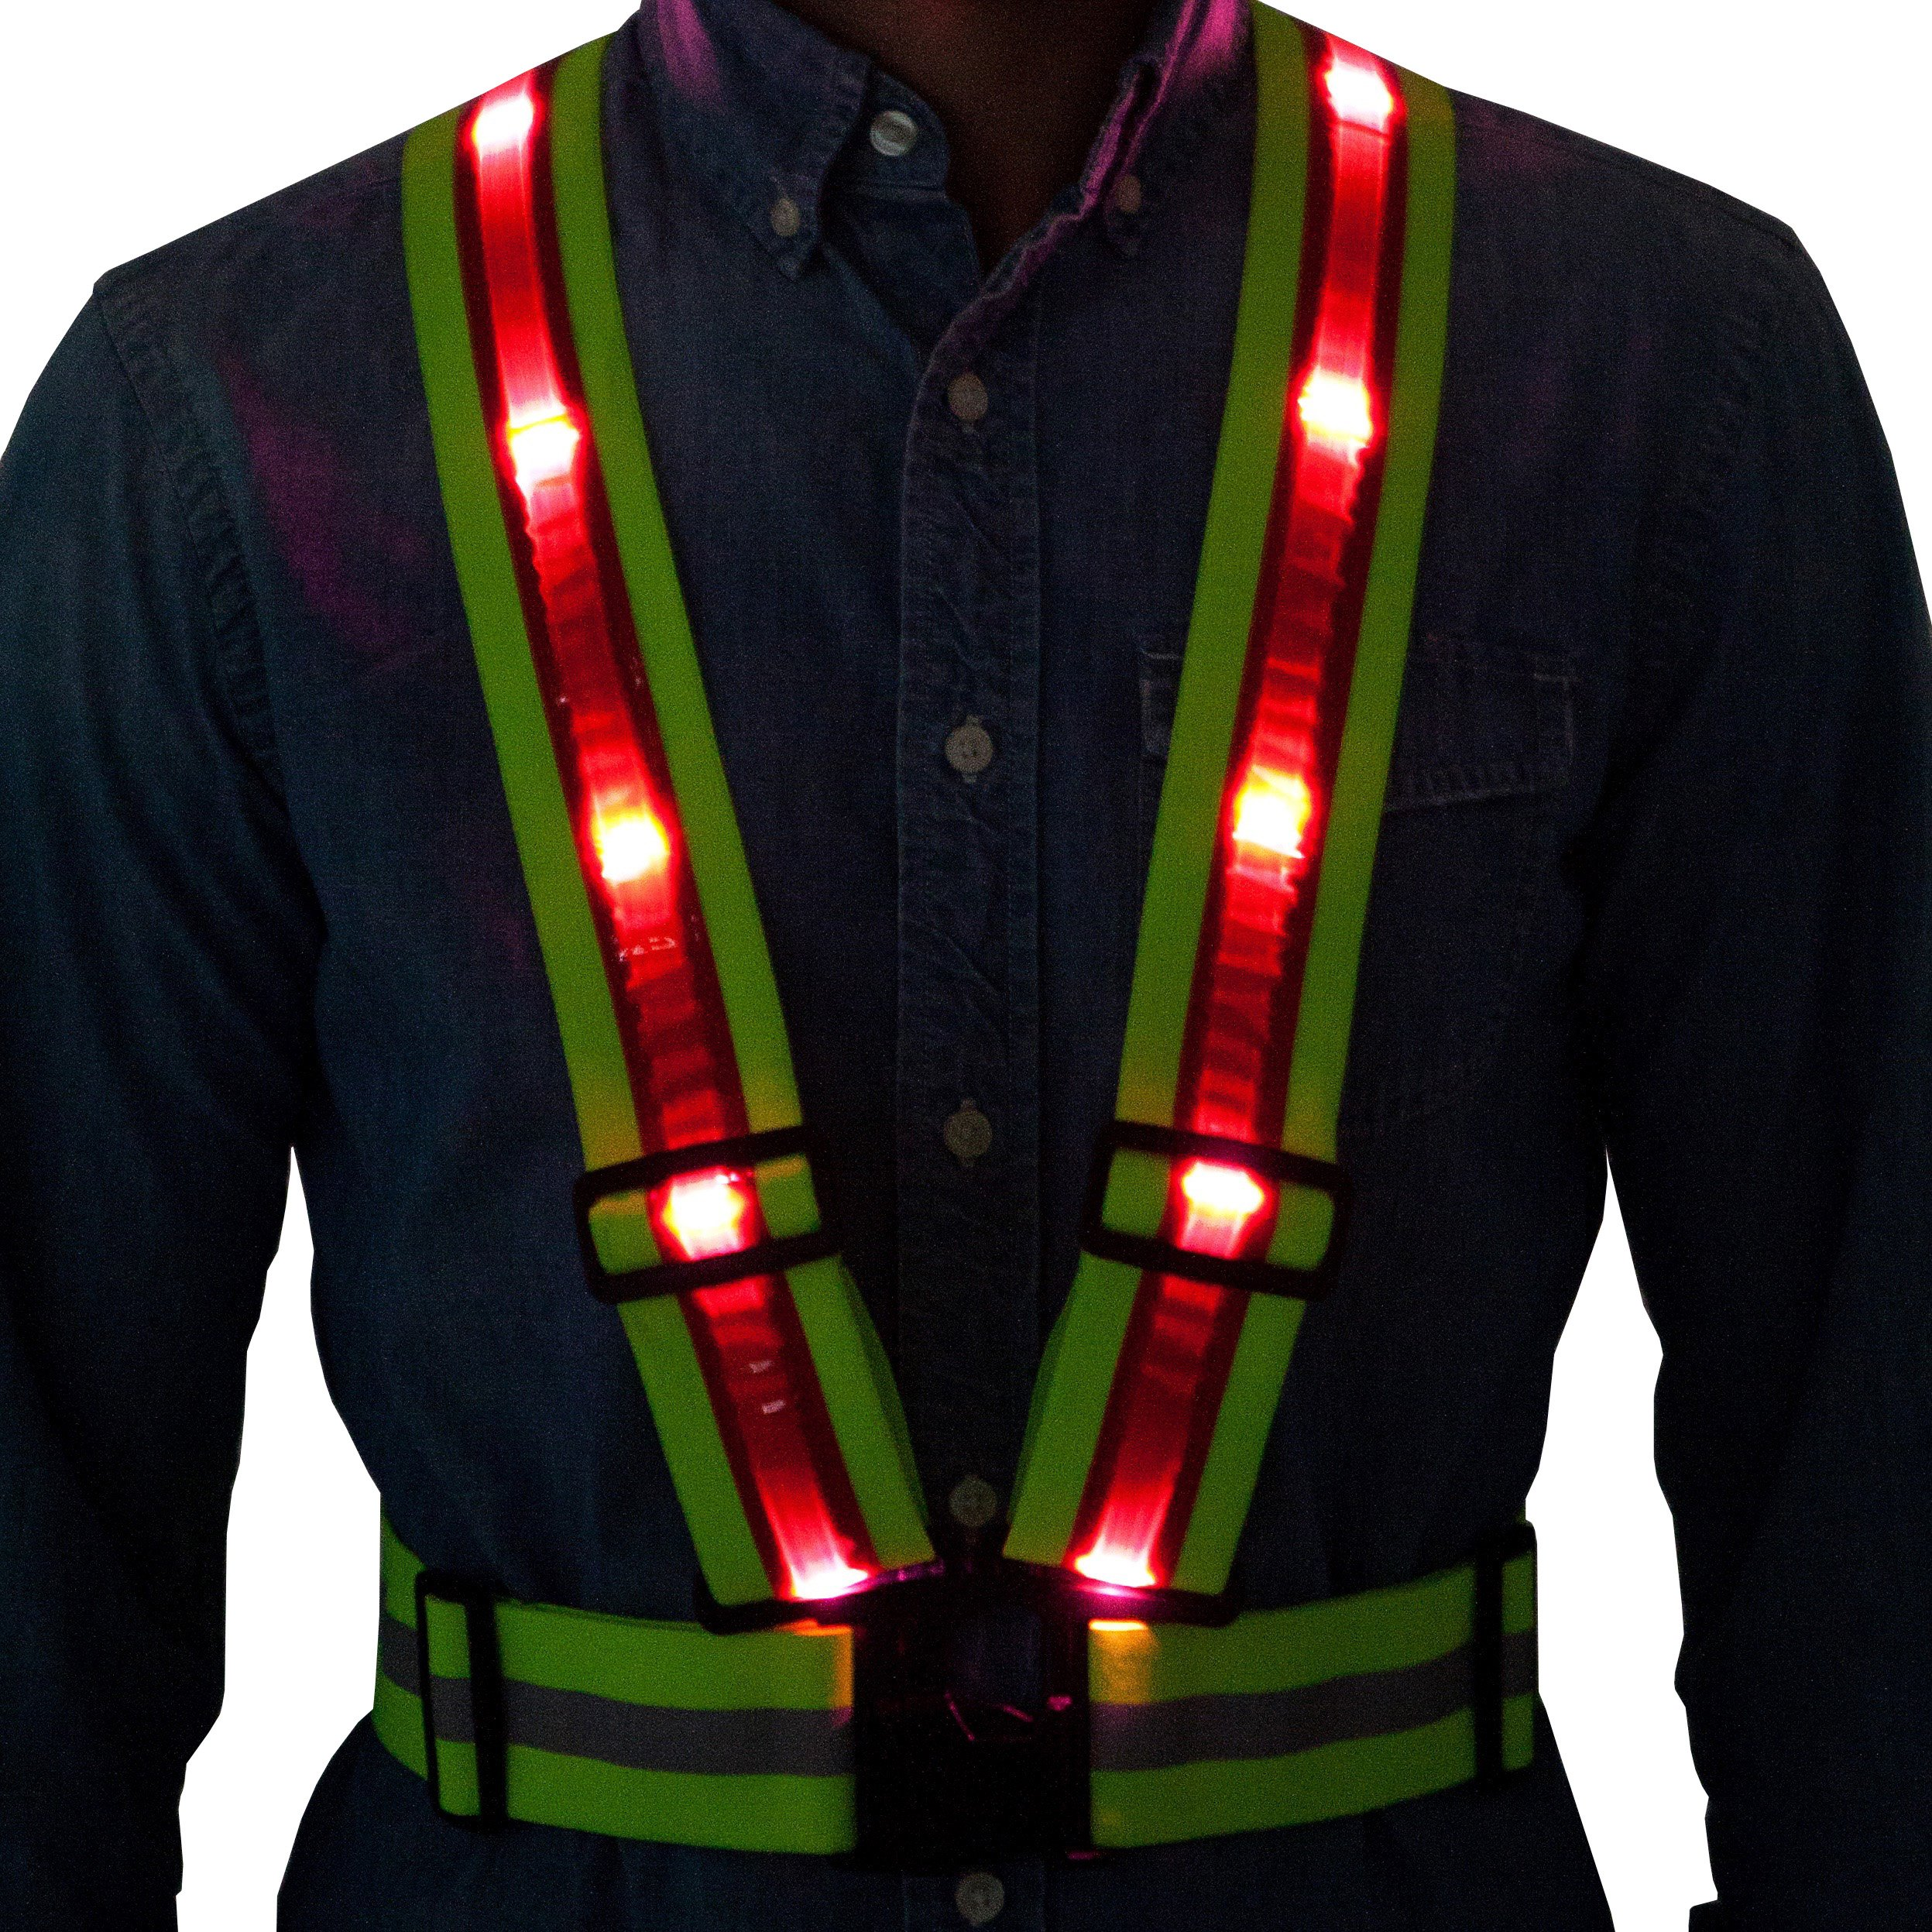 Tuvizo LED Reflective Safety Vest Storage Bag. High Visibility Night & Day. Lightweight Hi Vis Gear Lights Running Cycling Motorcycle Walking Outdoor Sport Activities in Traffic